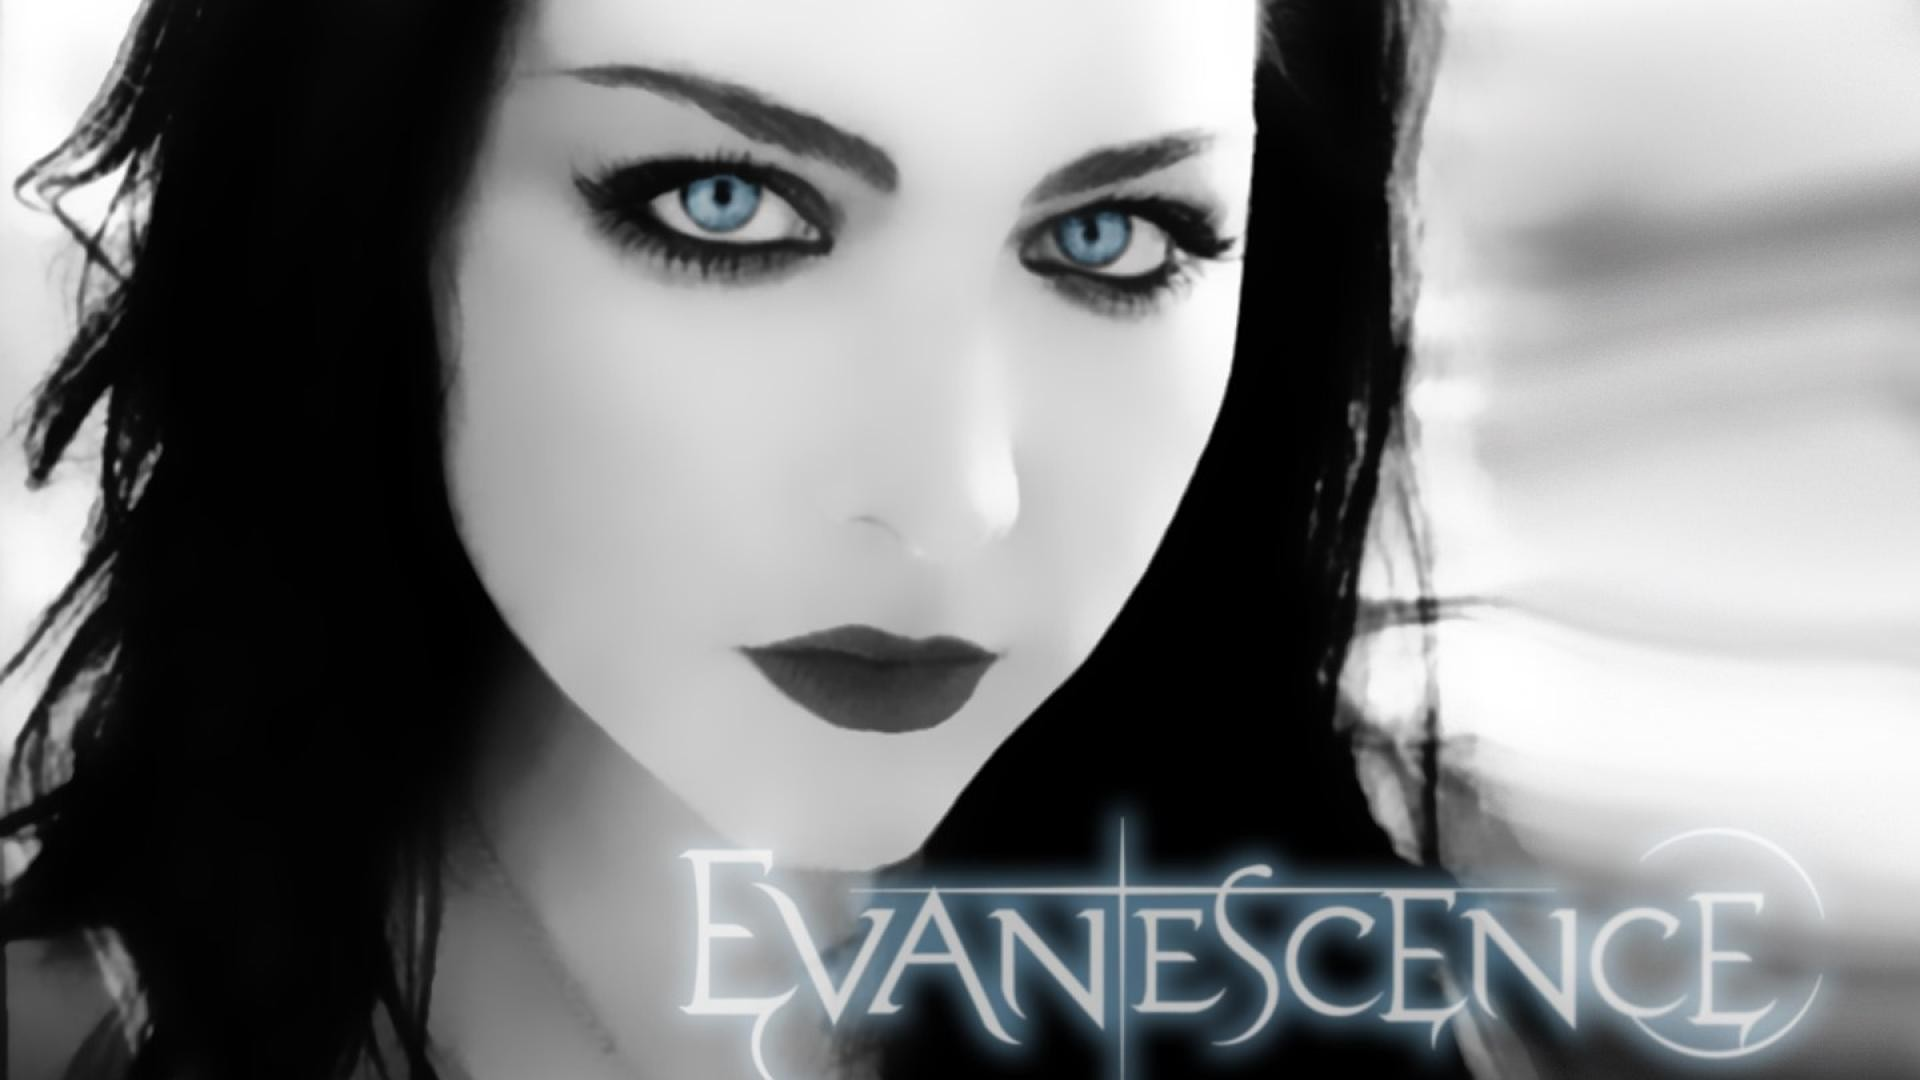 Evanescence HD Wallpapers – Free download latest Evanescence HD Wallpapers  for Computer, Mobile, iPhone, iPad or any Gadget at WallpapersCharlie.co…